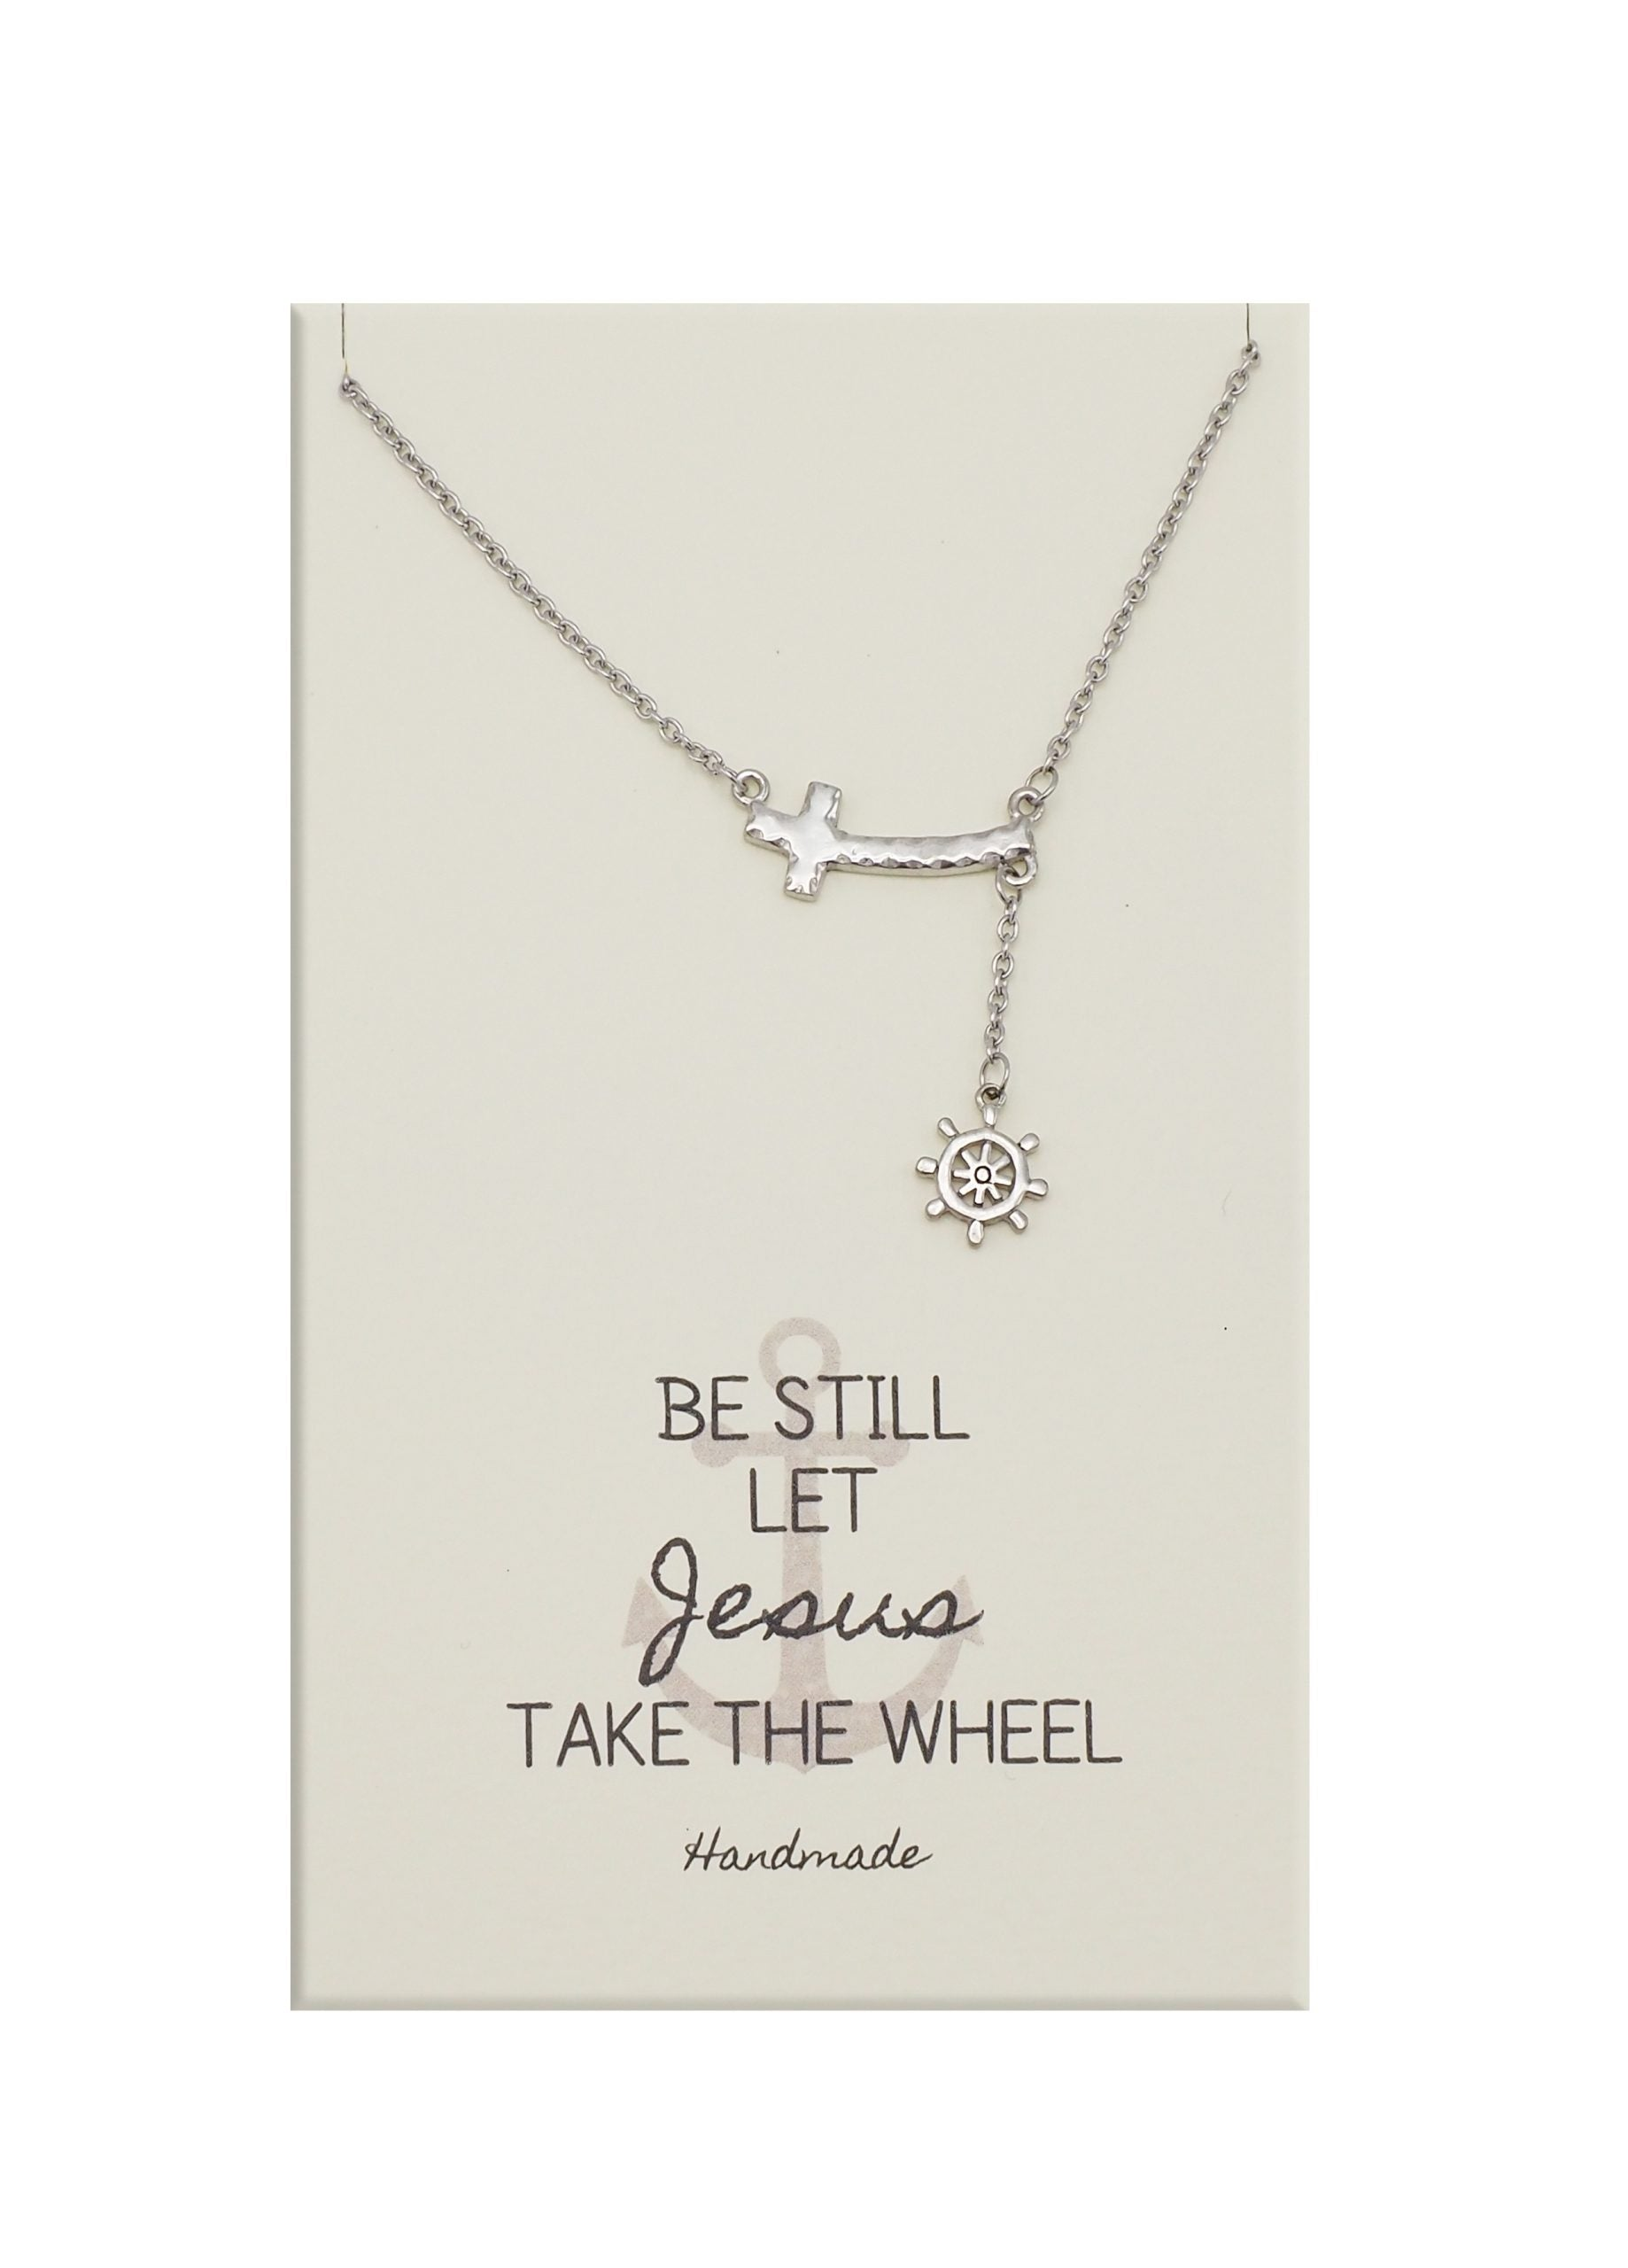 Joyfulle Terah Ship Wheel and Anchor Necklace, Religious Gifts for Women with Inspirational Greeting Card, Adjustable Chain 16